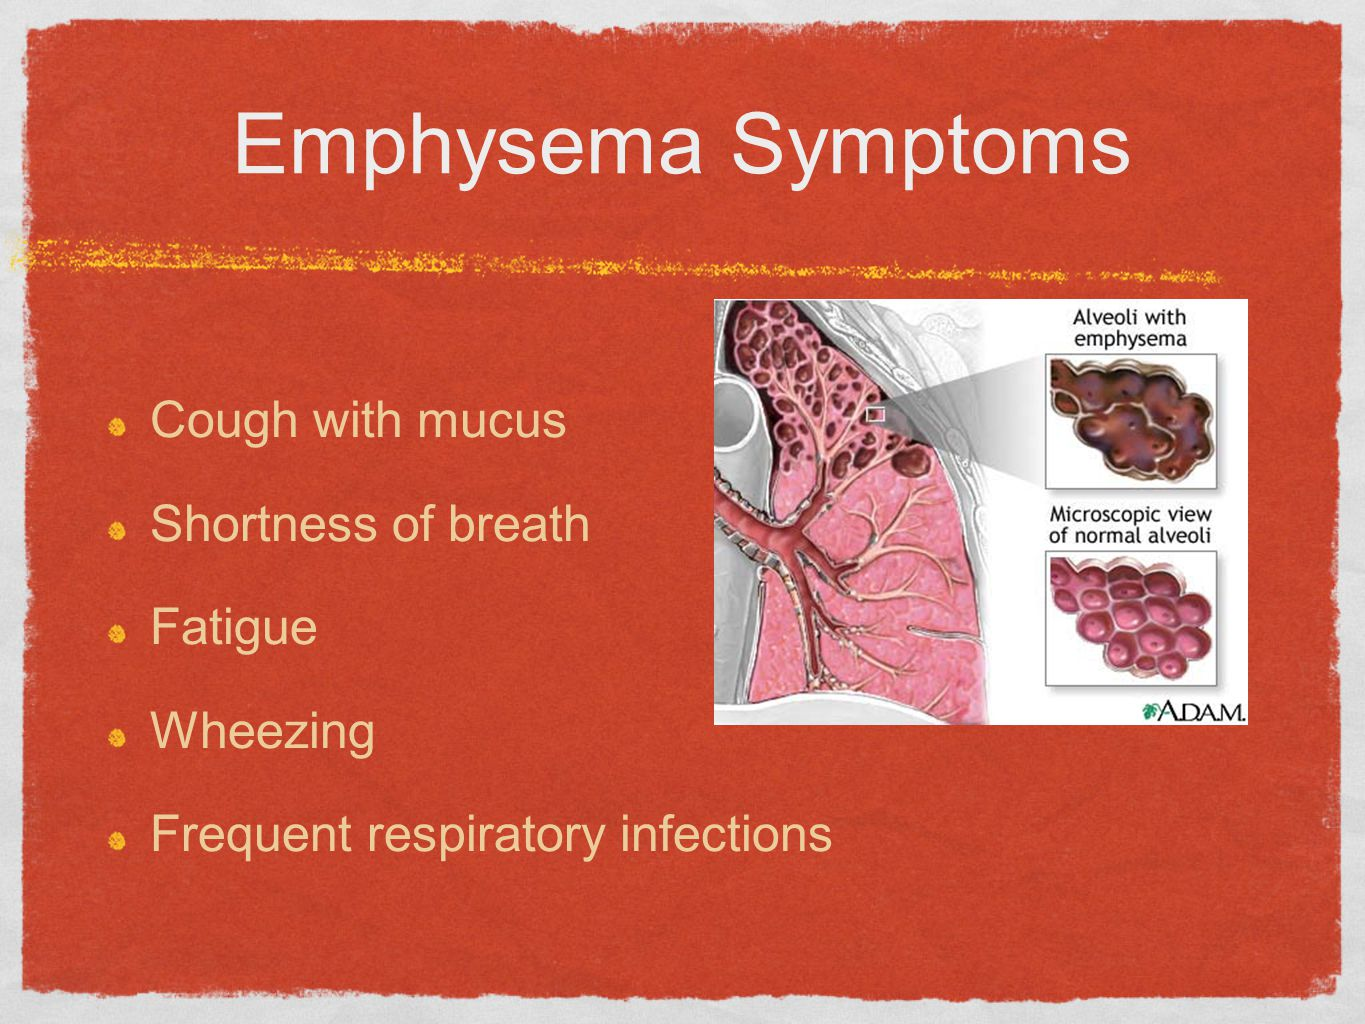 Emphysema Symptoms Cough with mucus Shortness of breath Fatigue